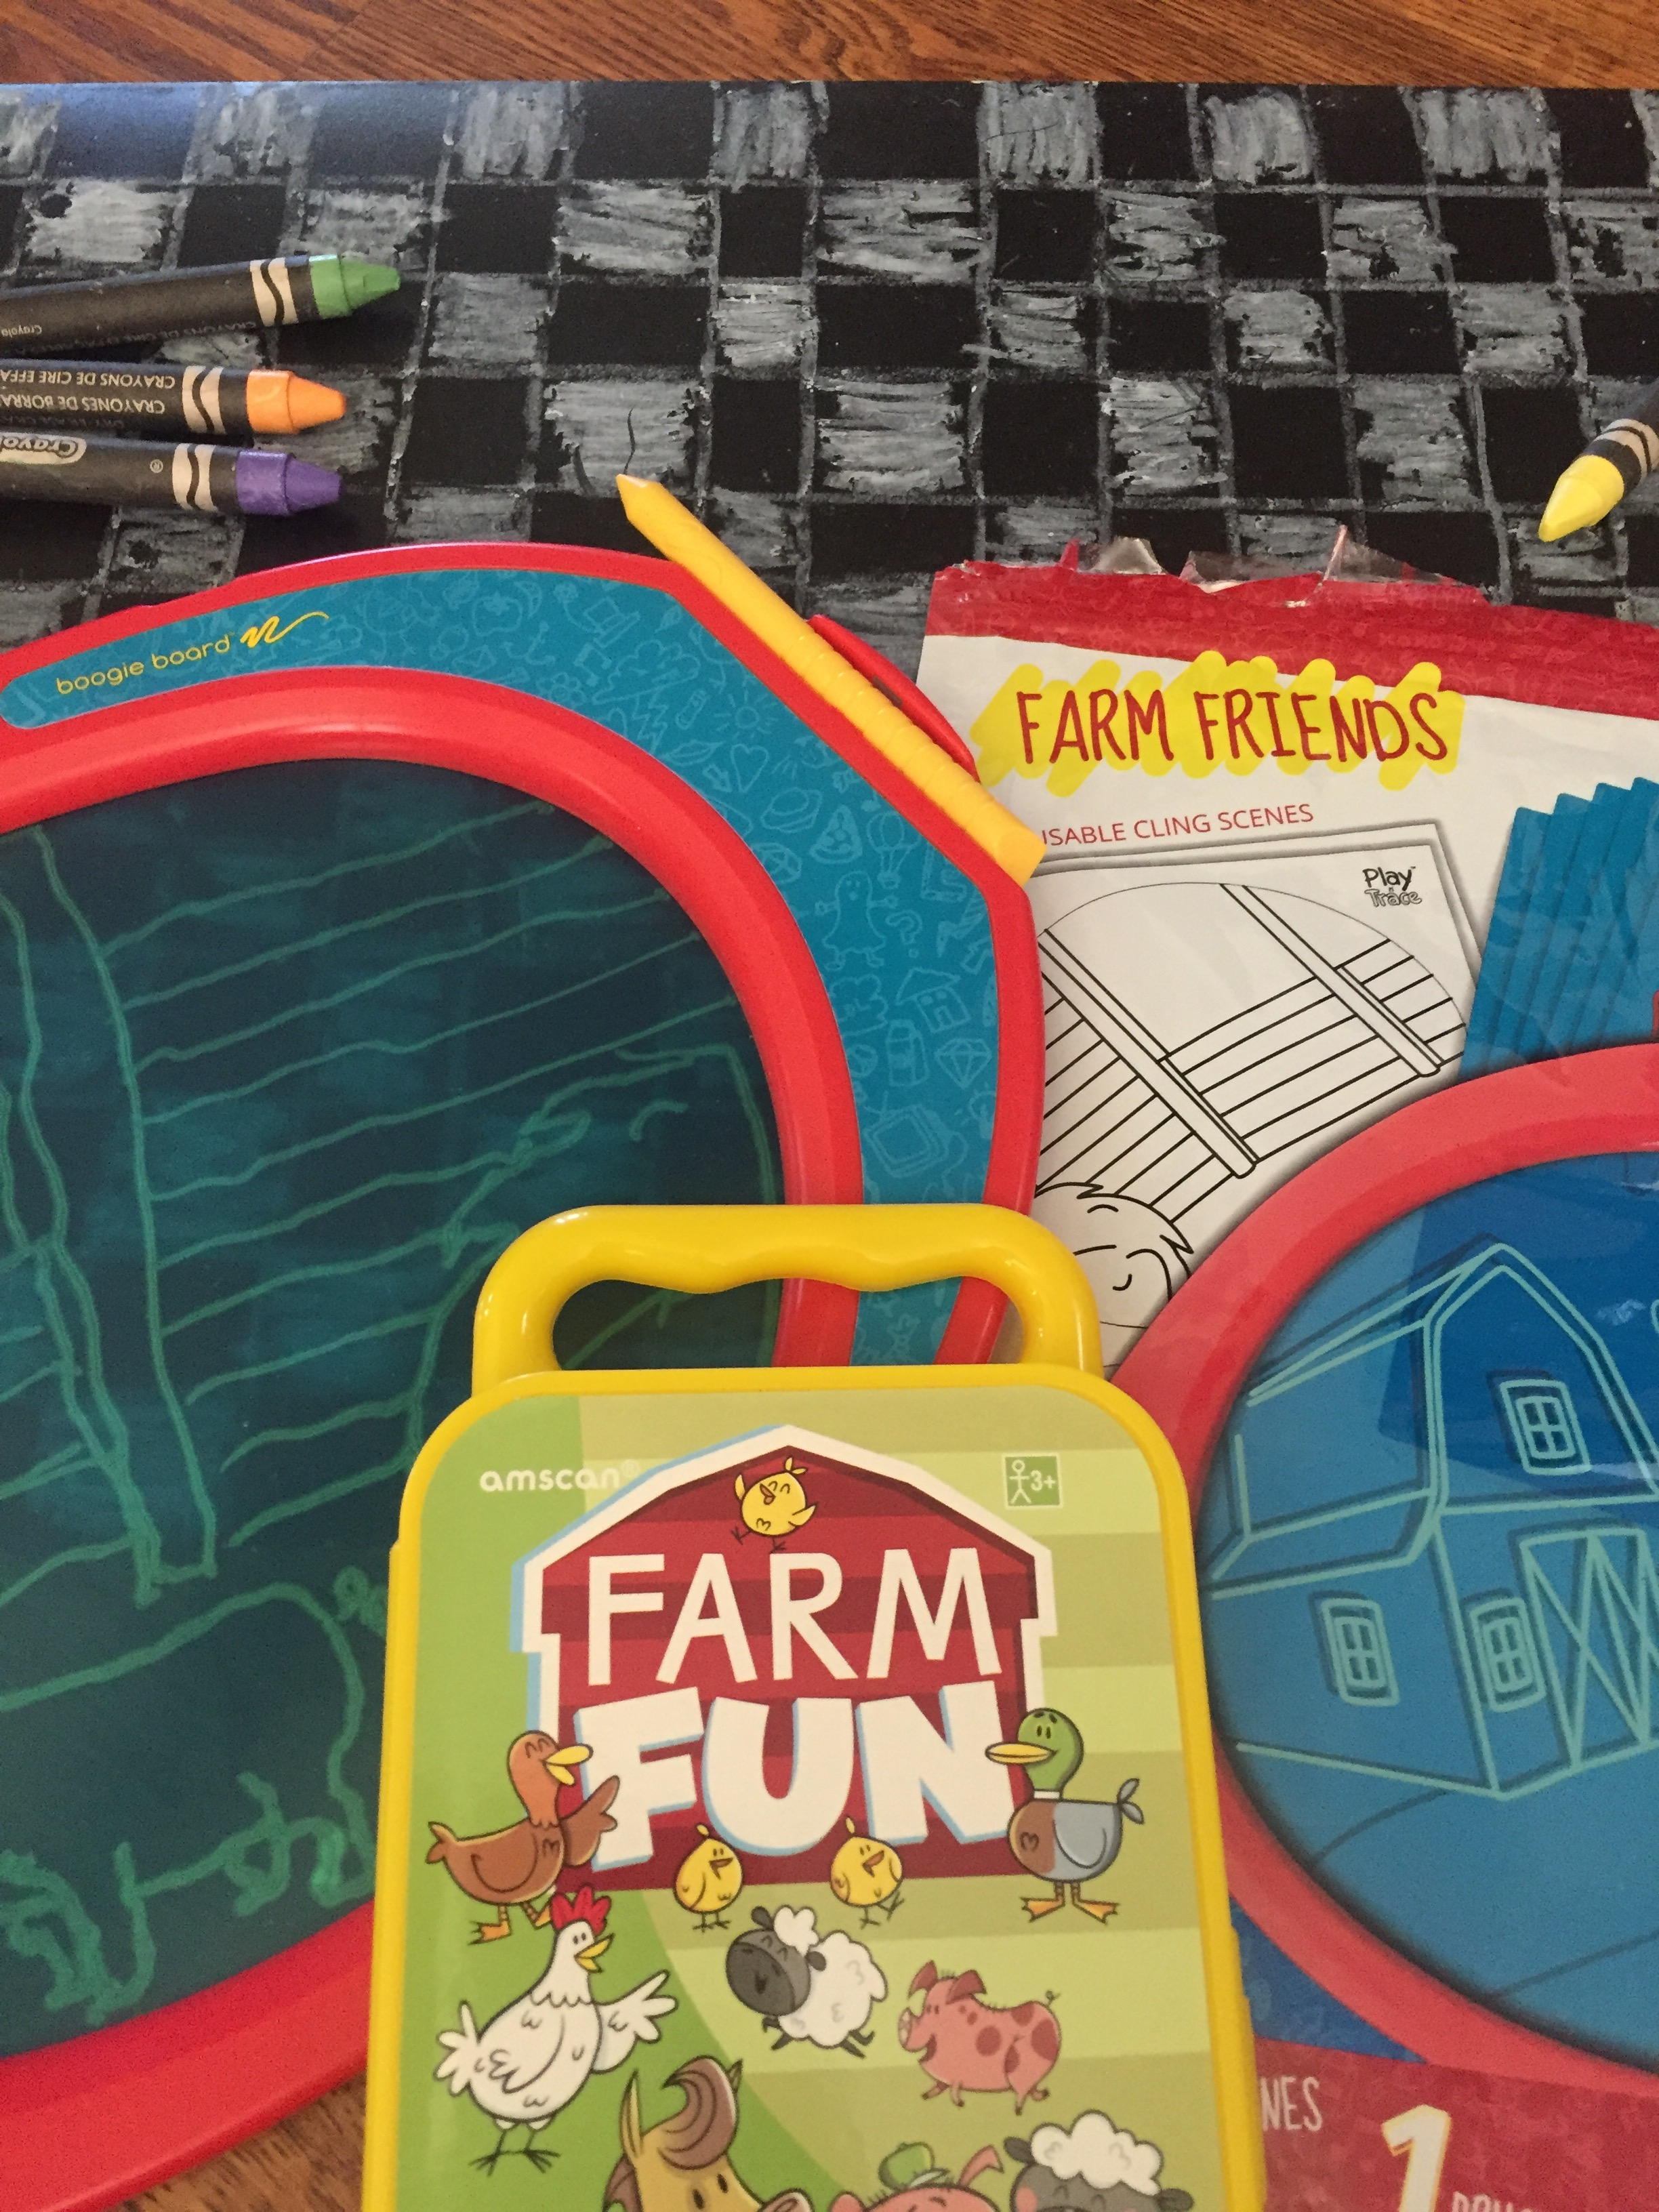 Amscan travel kits Farm Fun theme Boogie drawing board farm friends accessory pack and chalkboard placemats with chalkboard crayons